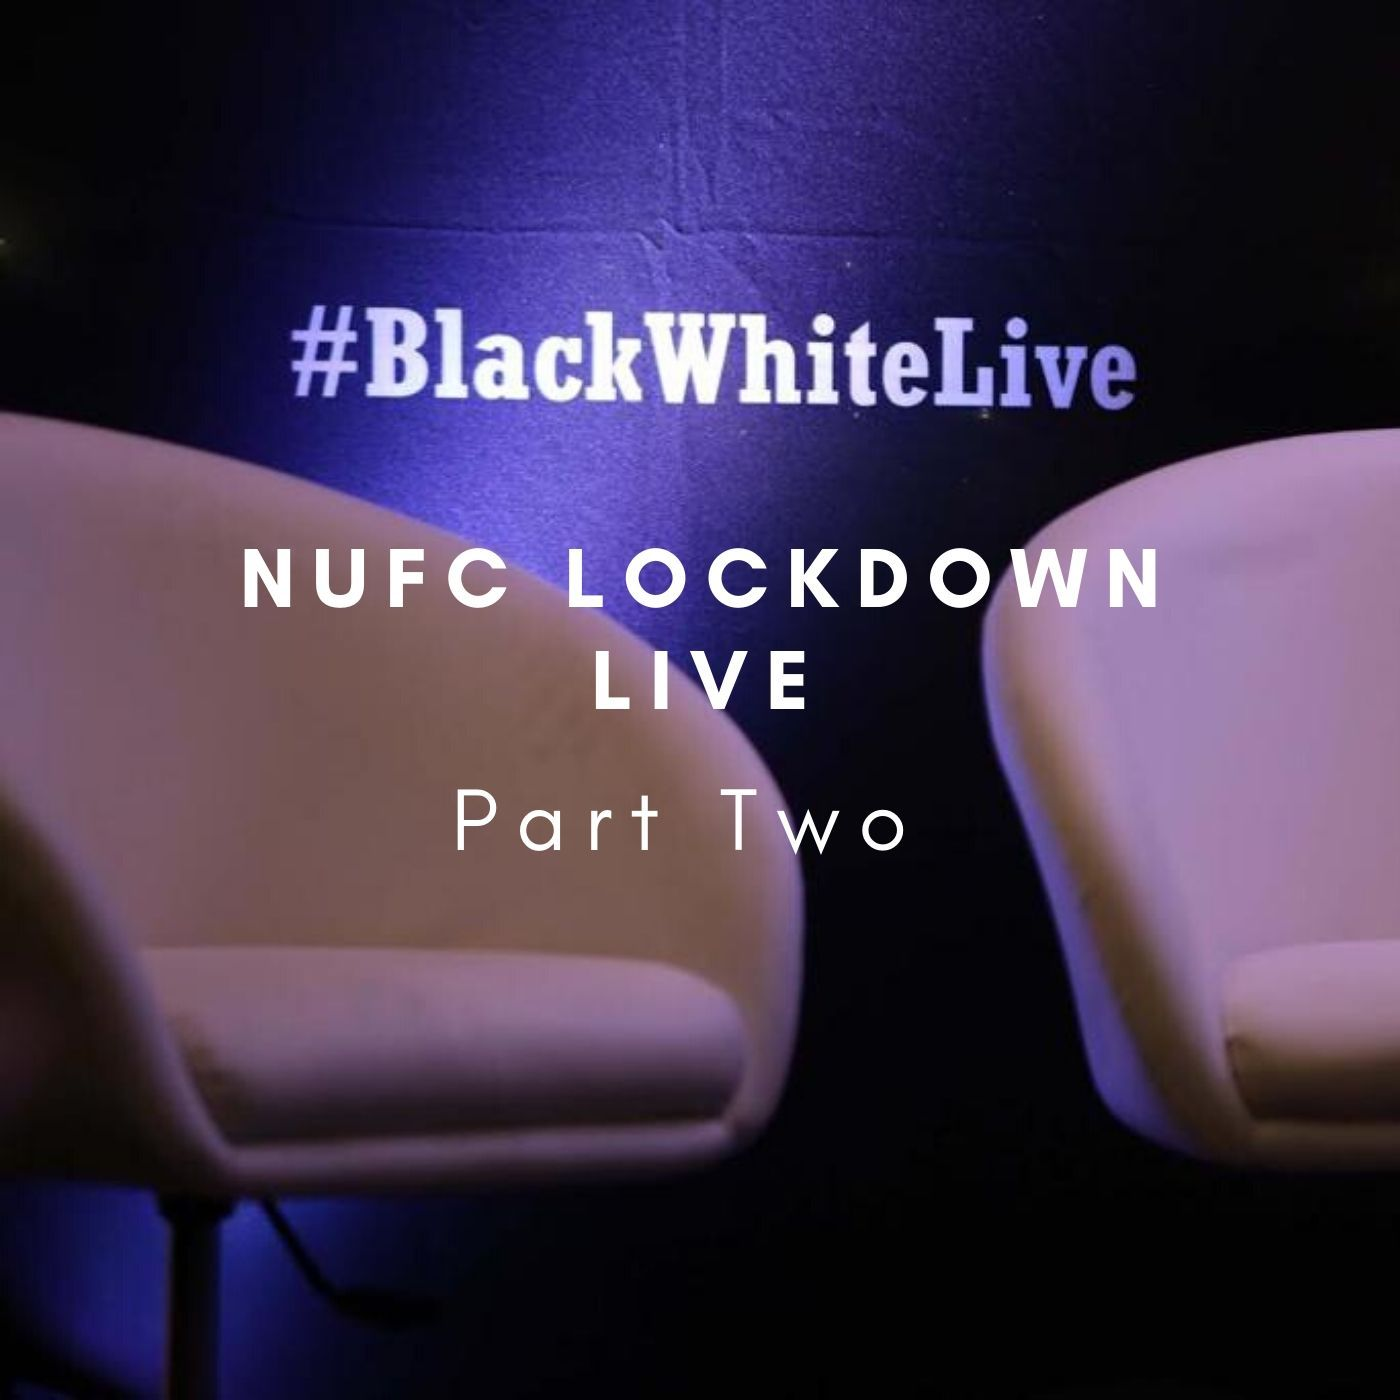 NUFC Lockdown Live - part two; Takeover predictions, Steve Bruce future and more